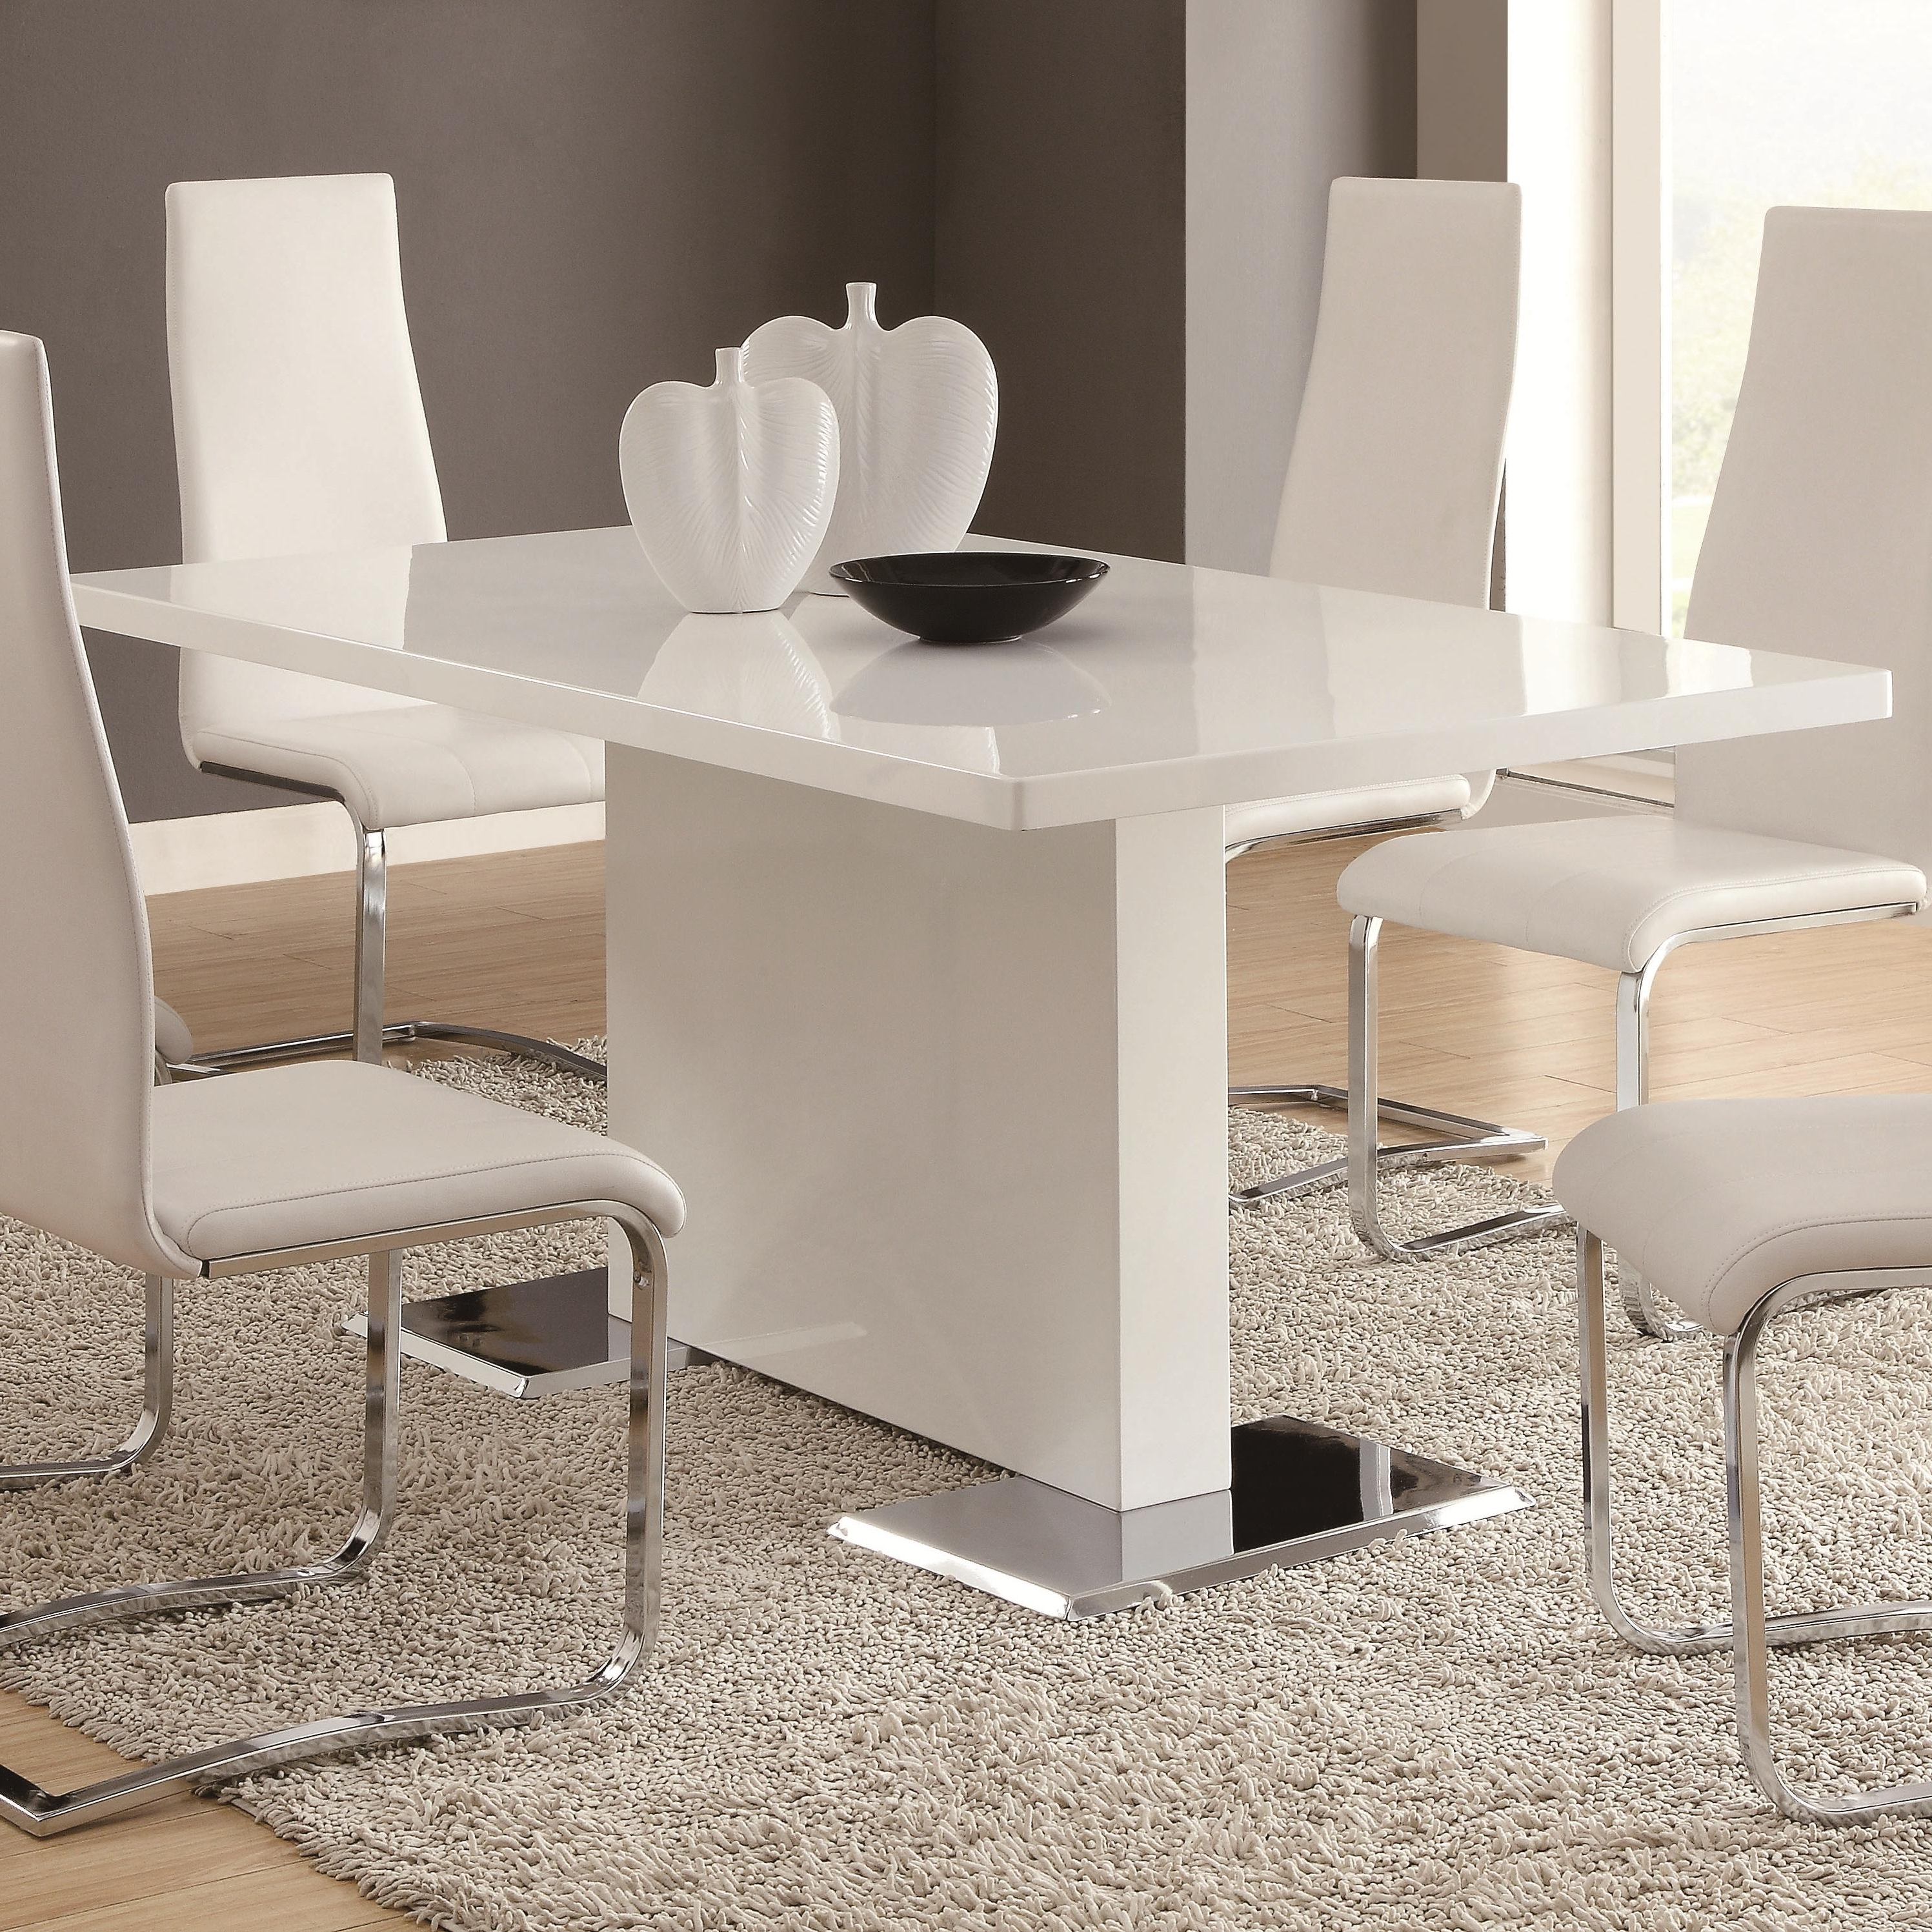 Coaster Modern Dining 102310 White Dining Table With Chrome Metal Pertaining To Well Known Modern Dining Room Sets (View 2 of 25)